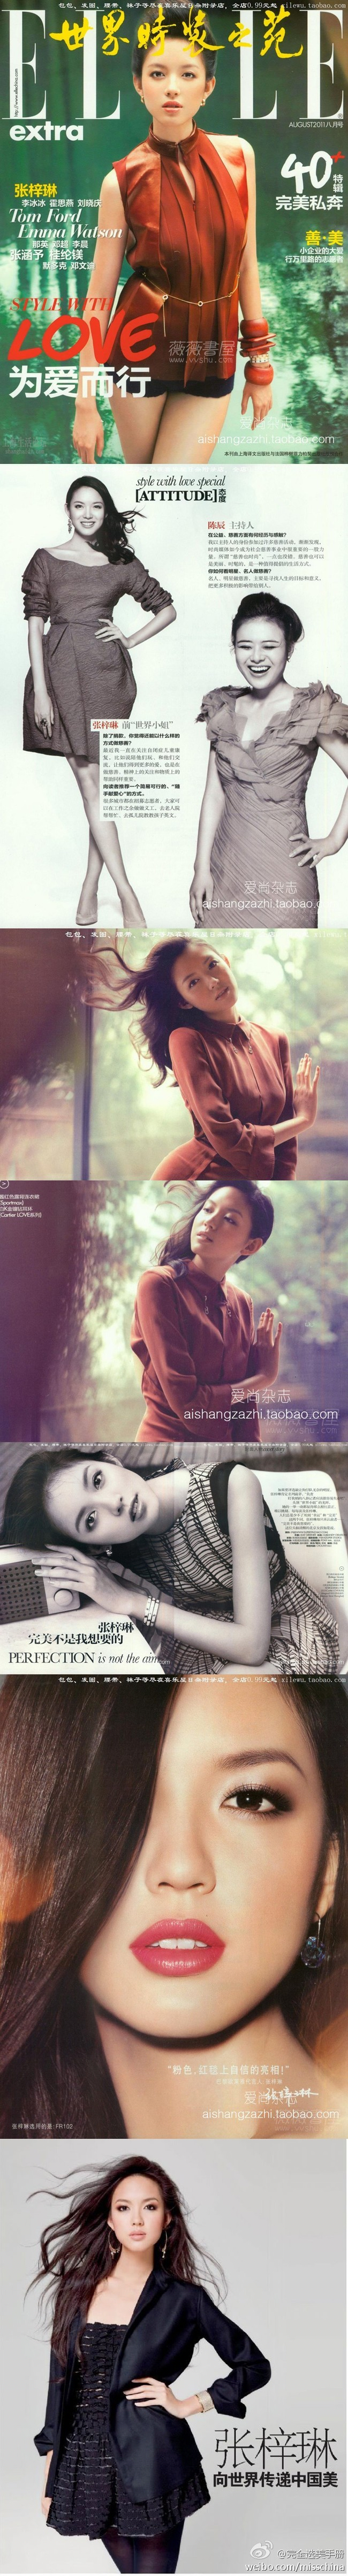 Zi Lin Zhang- MISS WORLD 2007 OFFICIAL THREAD (China) - Page 10 67645f06tw1dk7eeswccvj